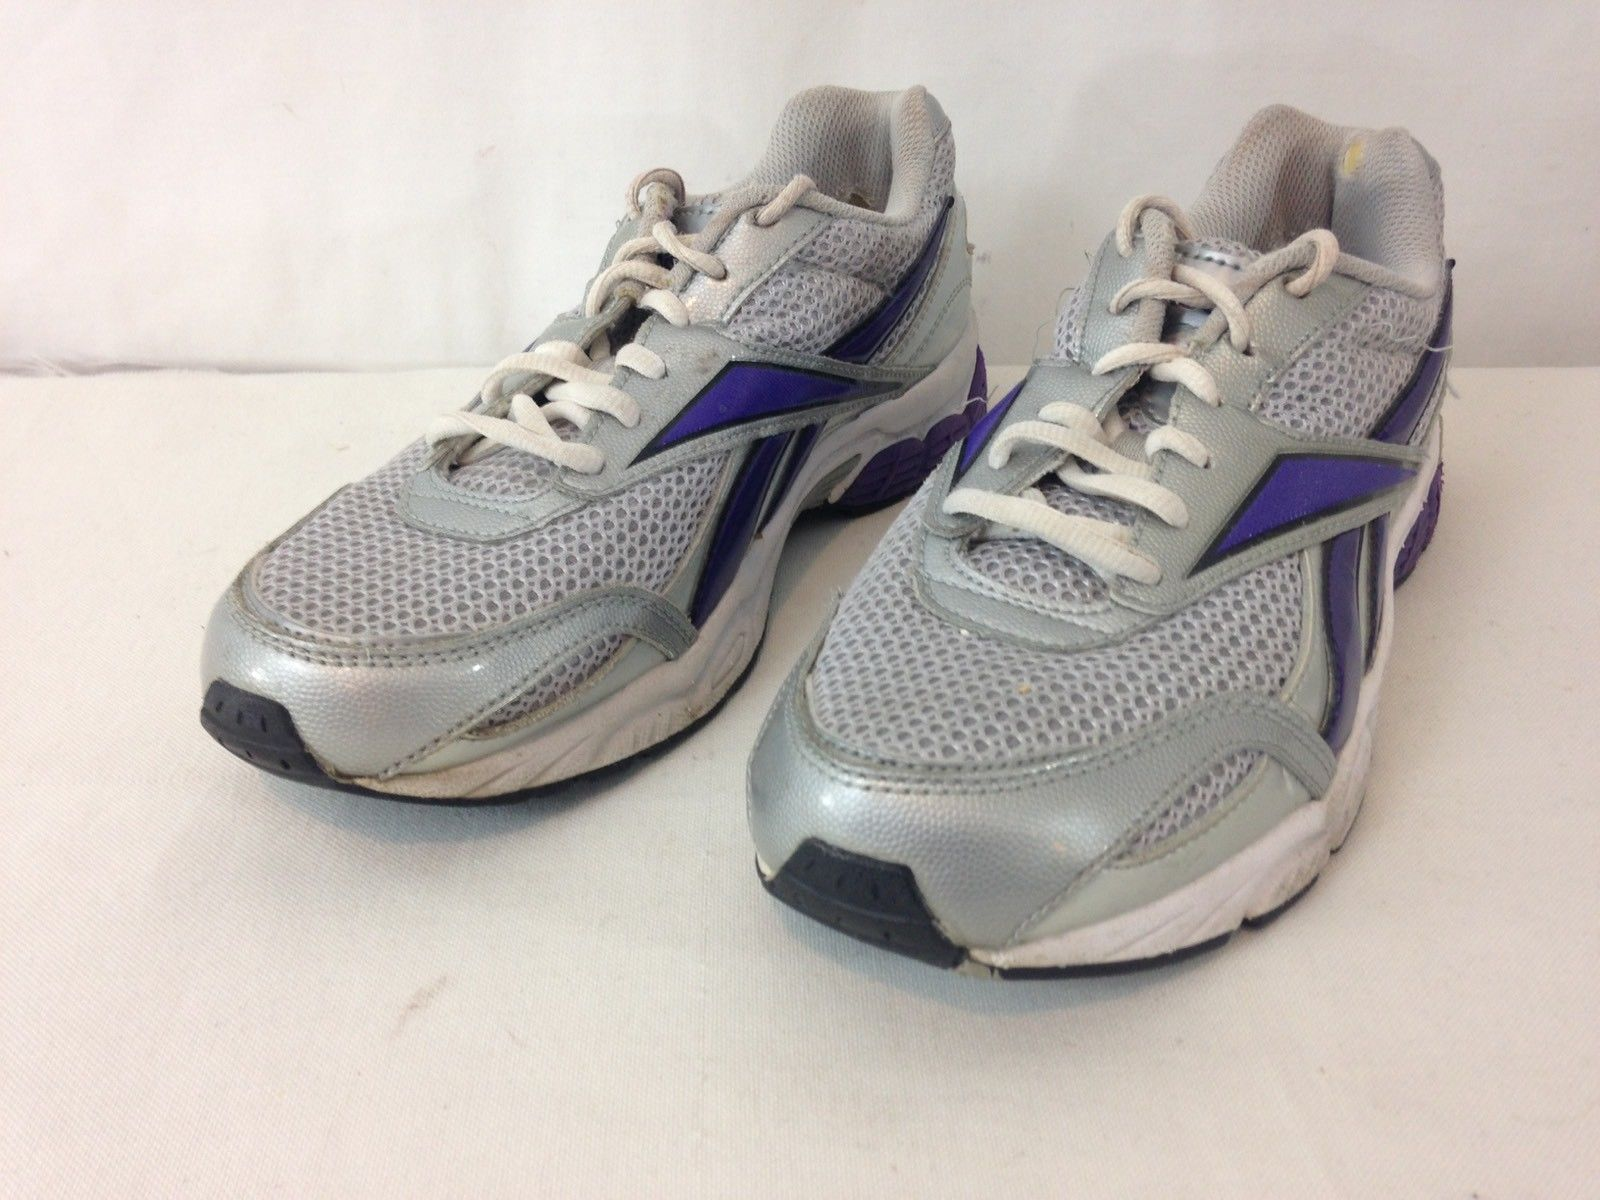 aac72d90 Reebok DMX Ride Womens 8 1/2 Silver Purple and 50 similar items